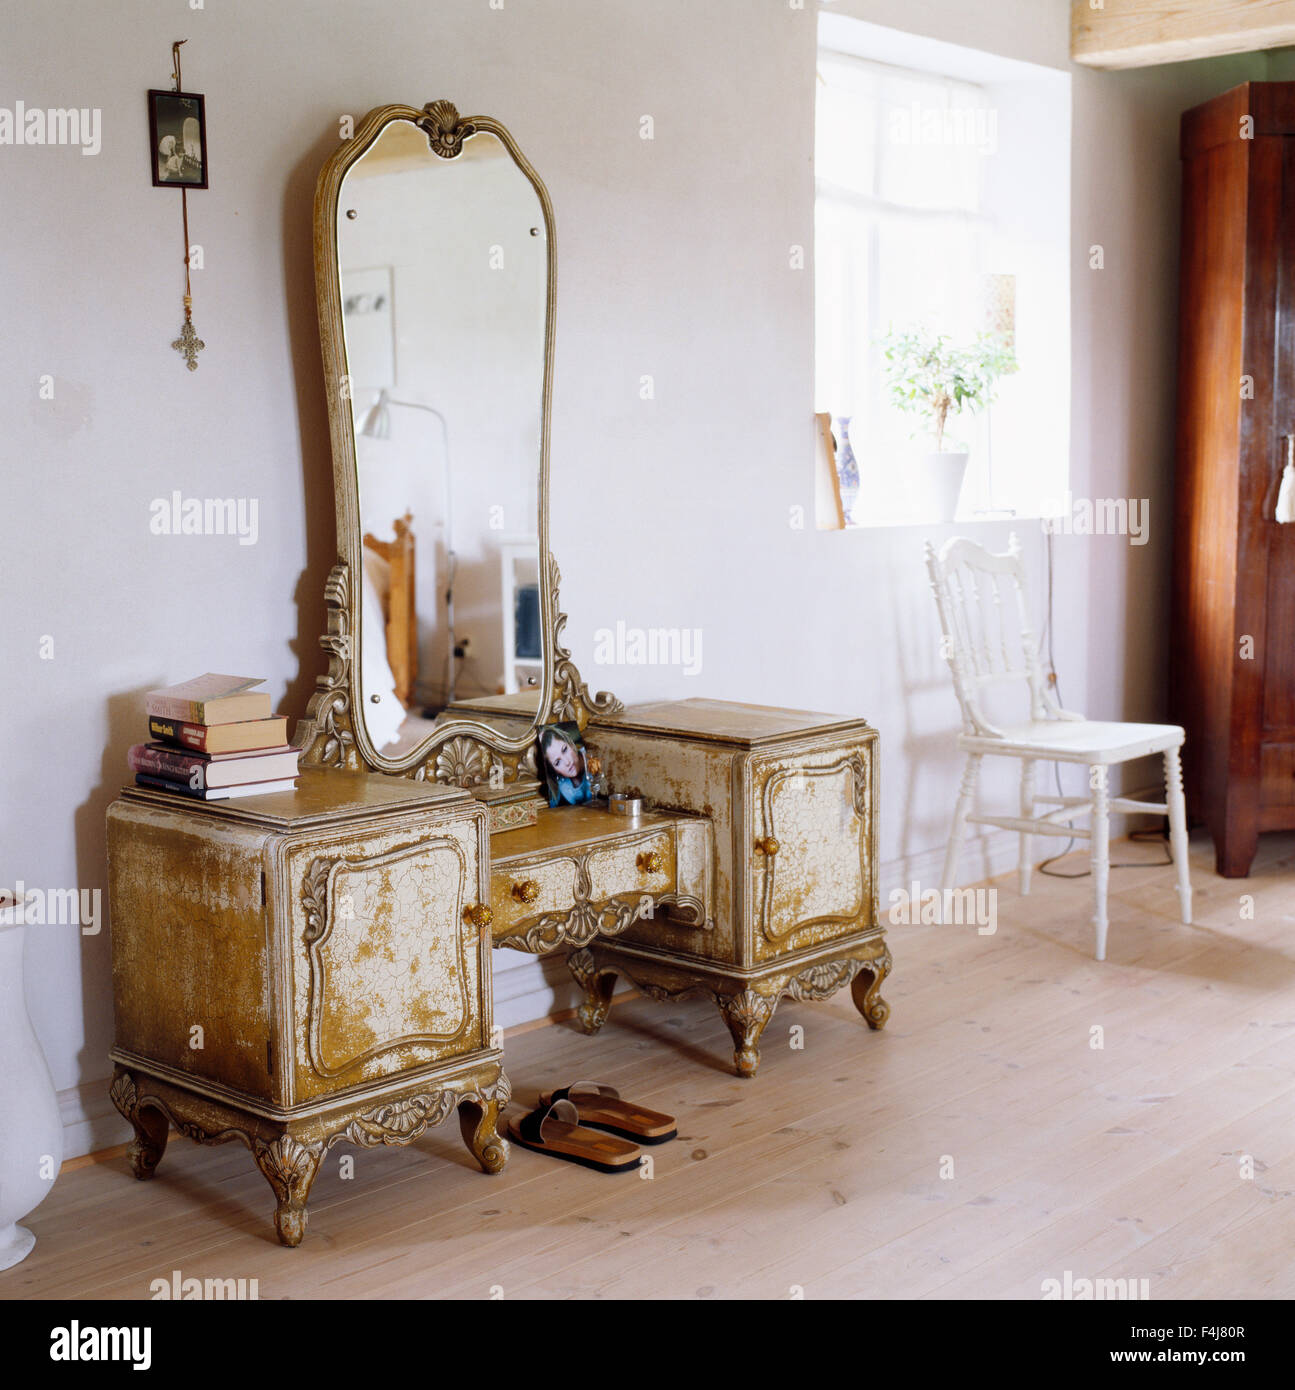 An antique furniture in a room. - Stock Image